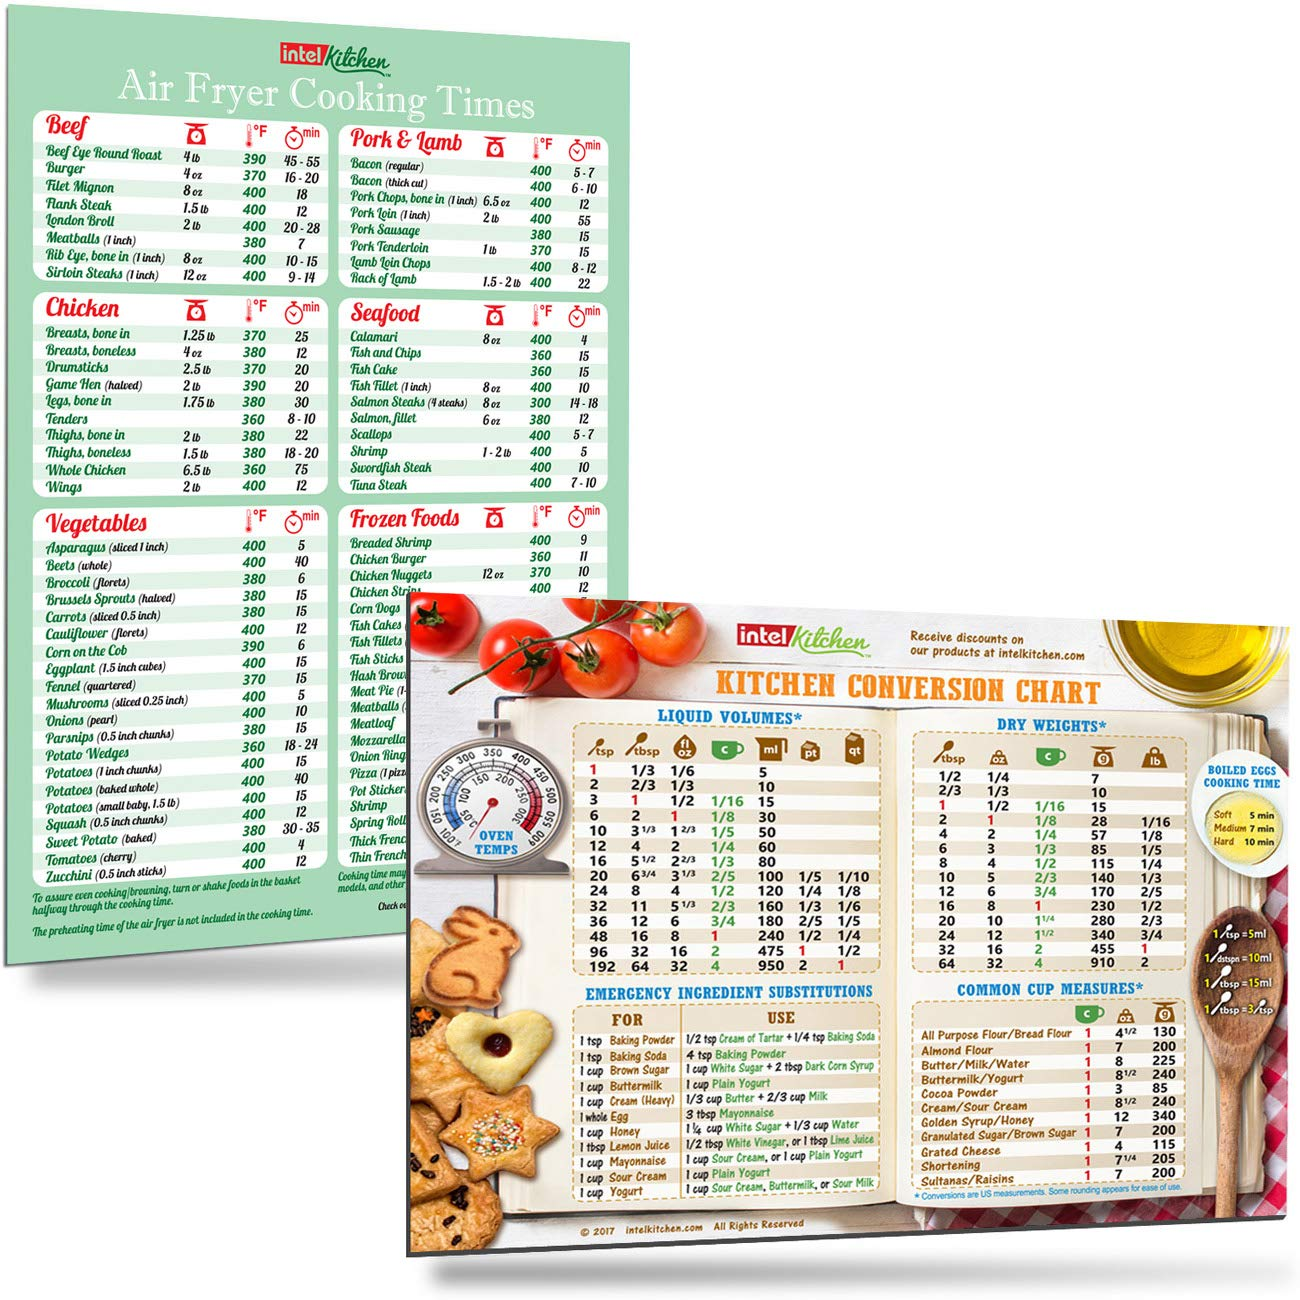 """Cool Kitchen Gift Set: Green Air Fryer Cooking Times + Kitchen Conversion Chart Magnets (8""""x11"""") Cooking Measuring Baking Hot Air Frying Cook Time Chart Recipes Cookbook Reference Cheat Sheet Accessories Easy To Read Big Fonts"""